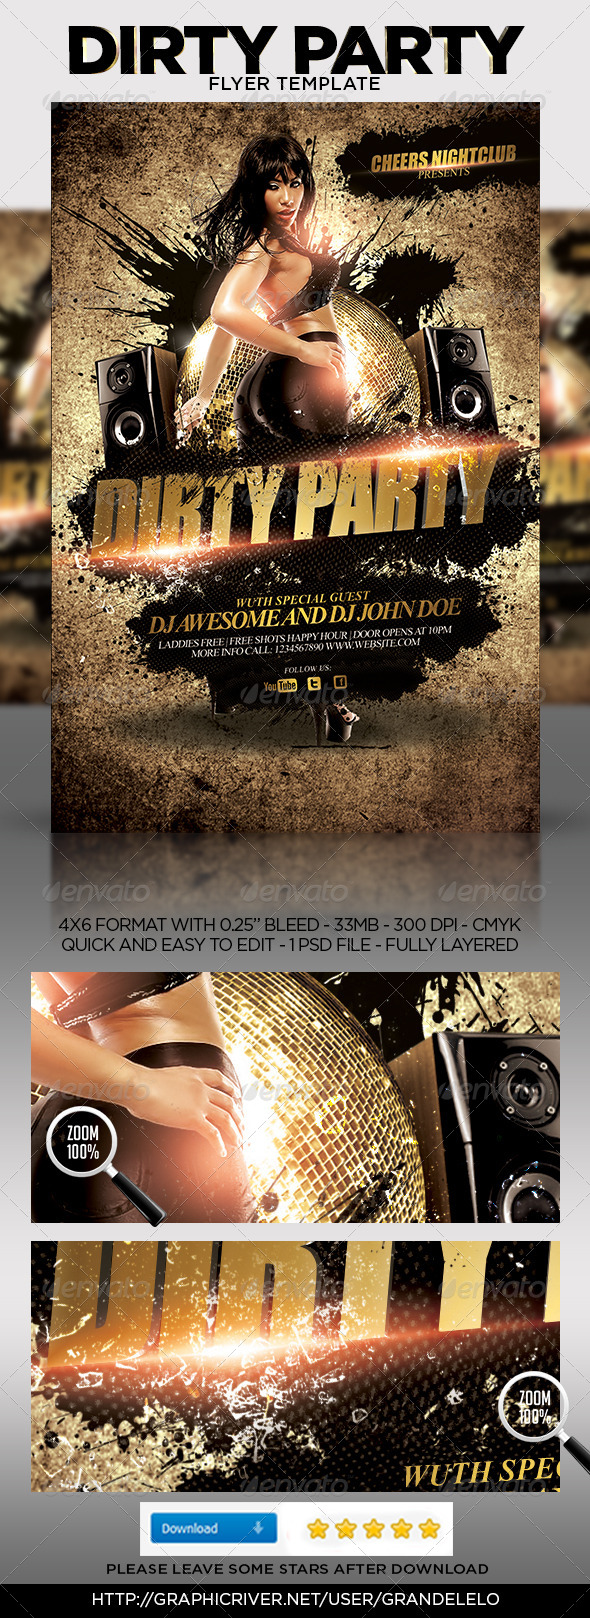 GraphicRiver Dirty Party Flyer Template 4623467